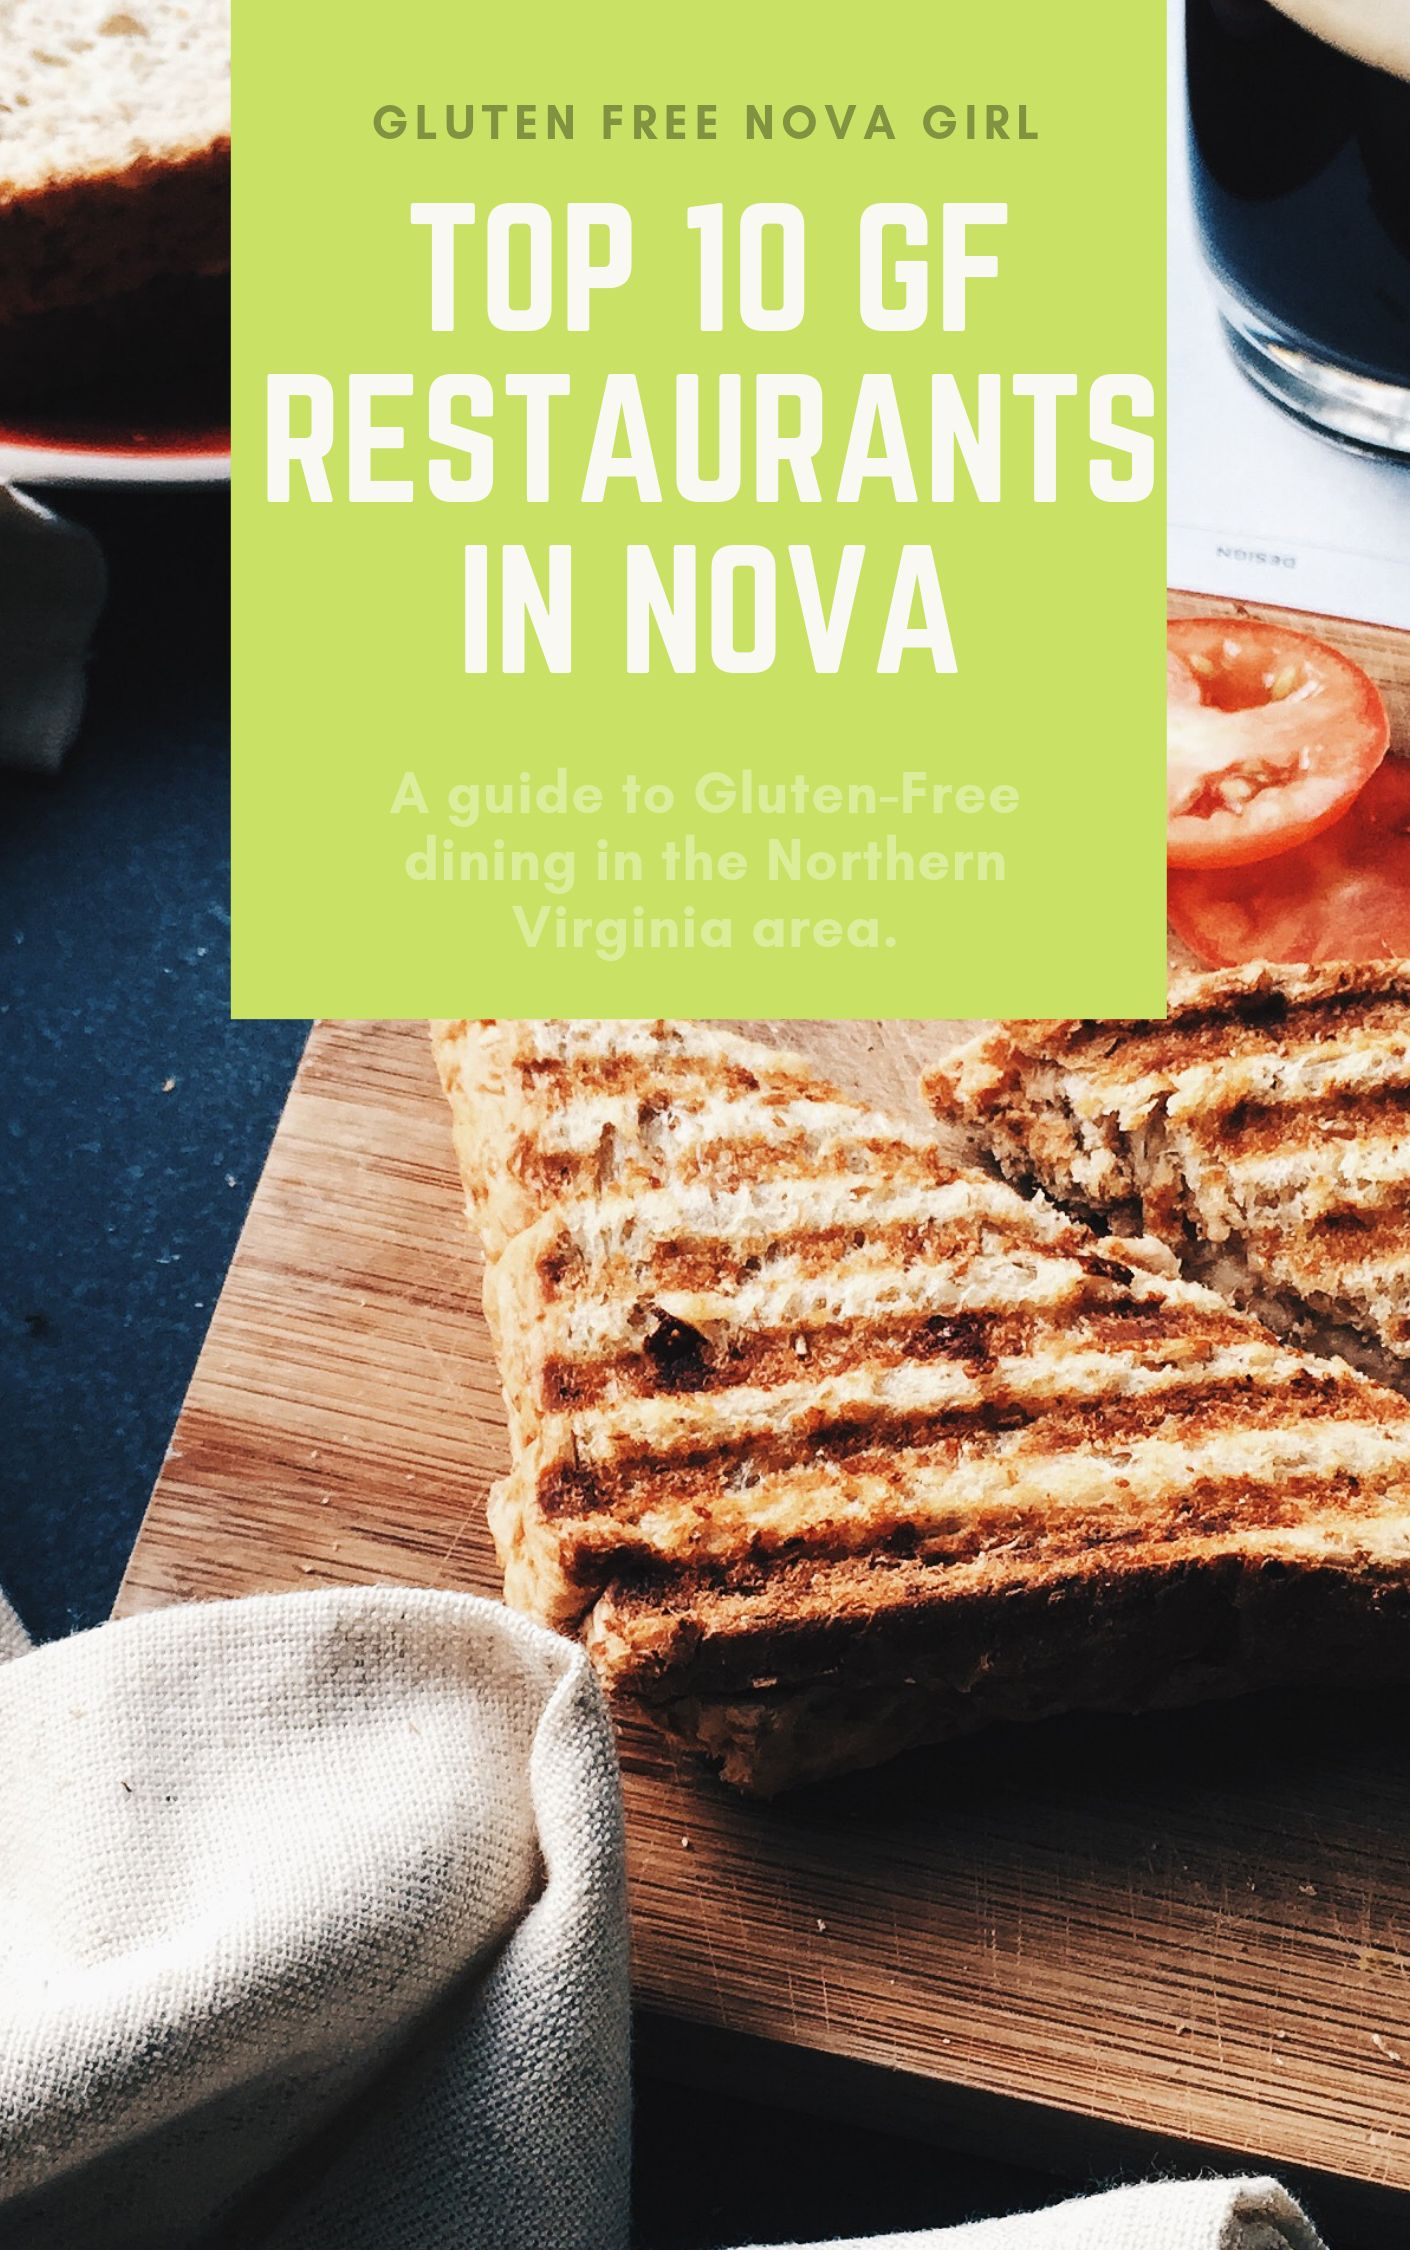 Join The Gf Nova Girl Mailing List And Download My Free Guide To Gf Restaurants In The Northern Virginia Area Gluten Free Restaurants Restaurant Nova